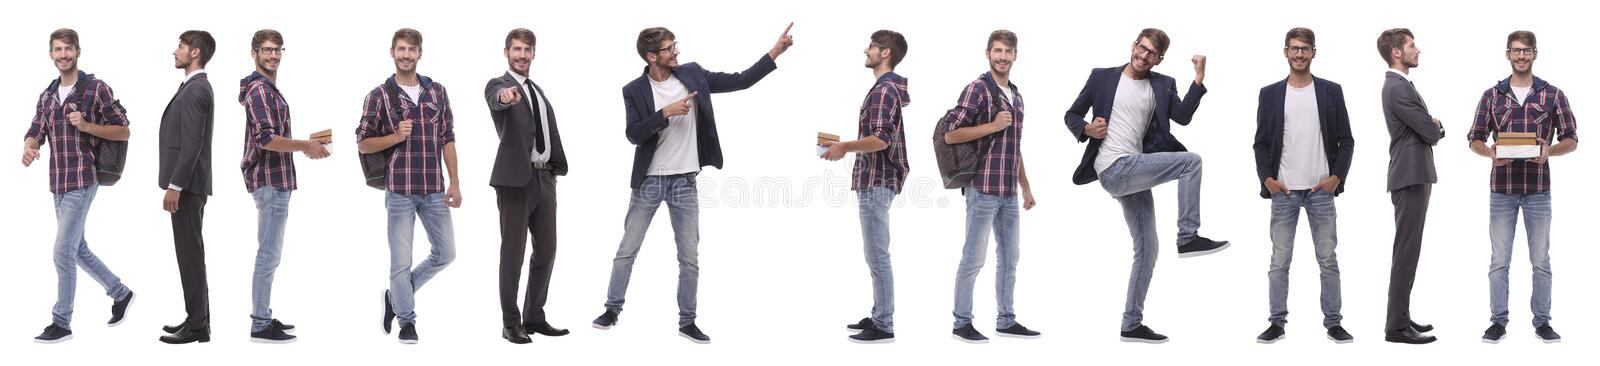 Panoramic collage of a promising young man royalty free stock image